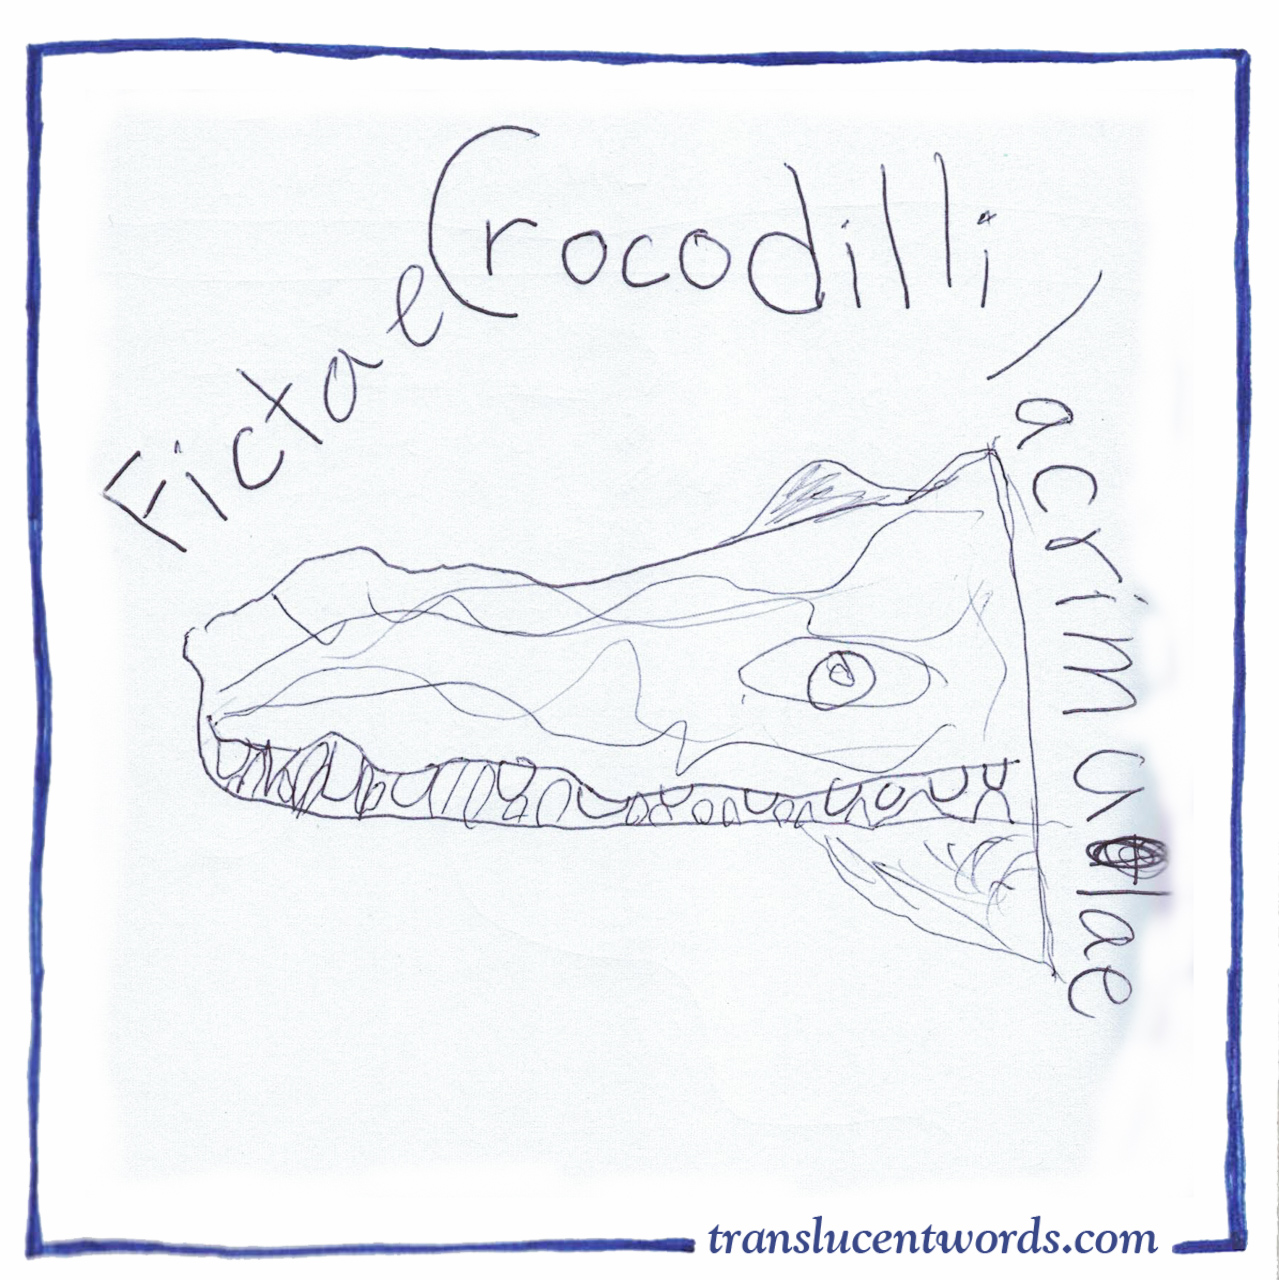 Crocodile-Edit-1